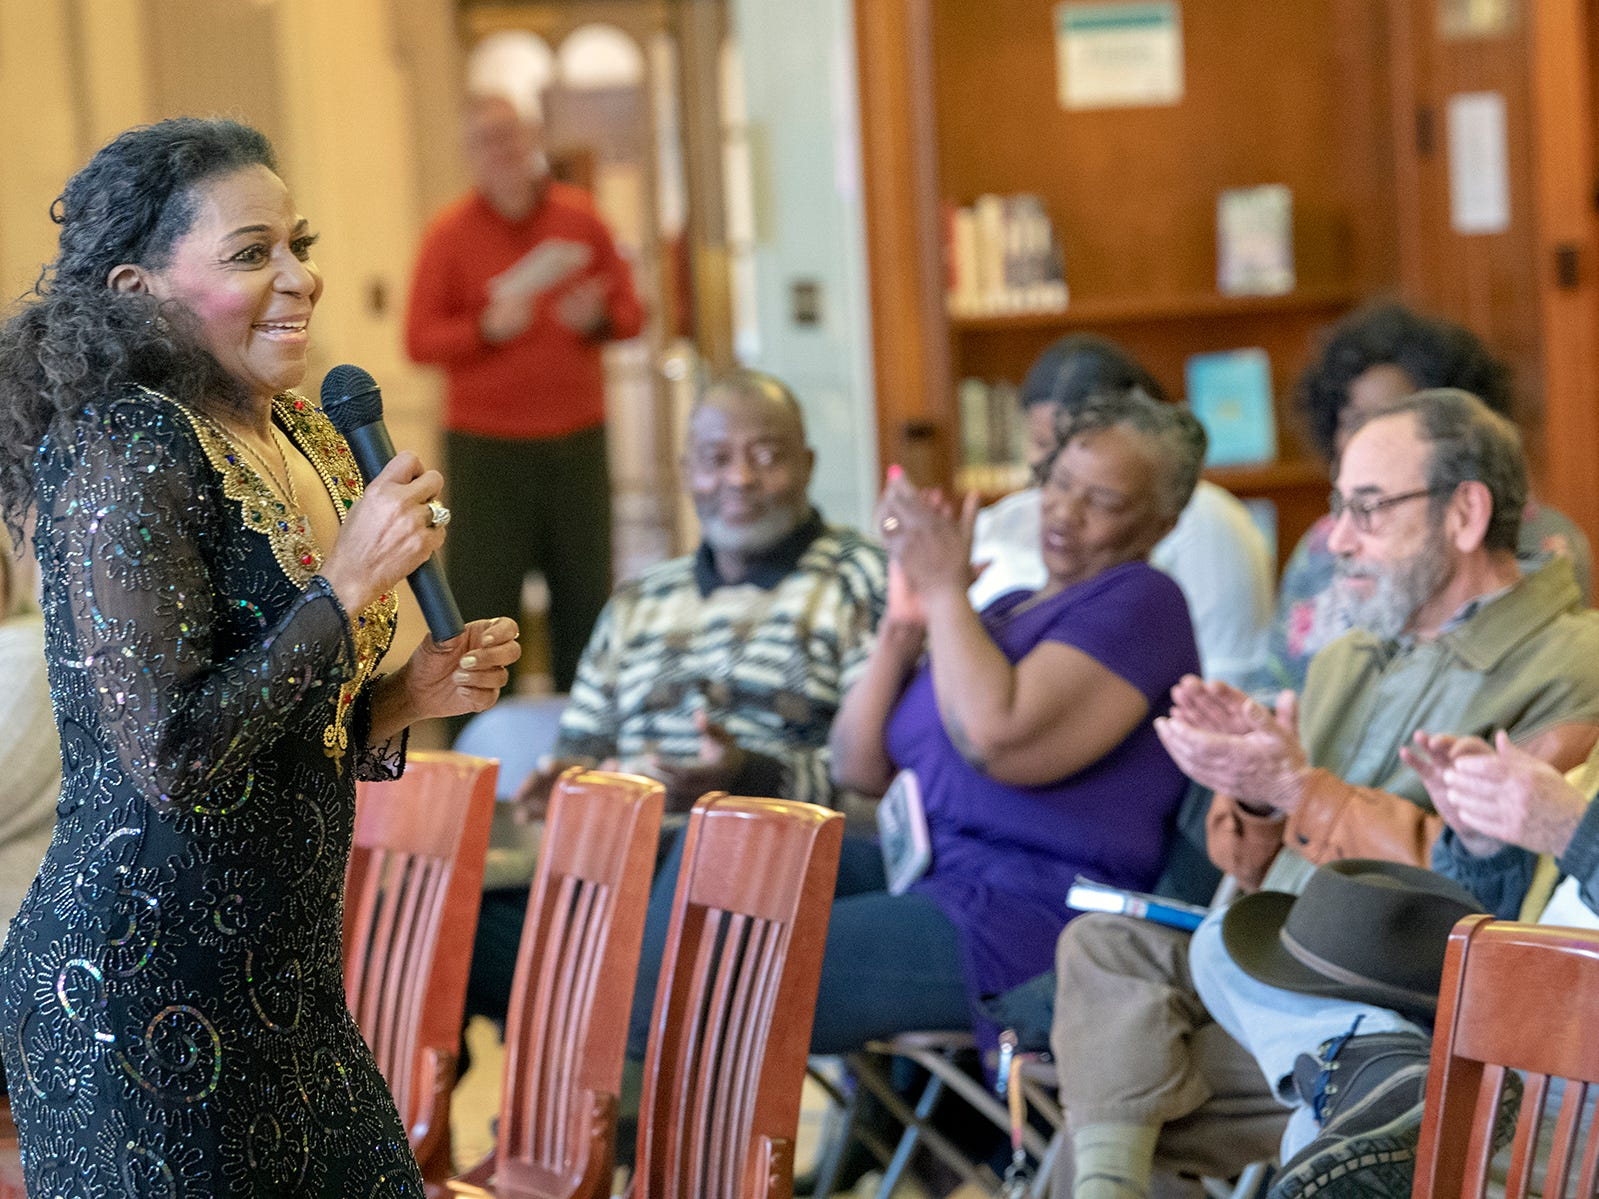 Vanda Guzman performs during a free concert at Martin Library on Sunday February 3, 2019.